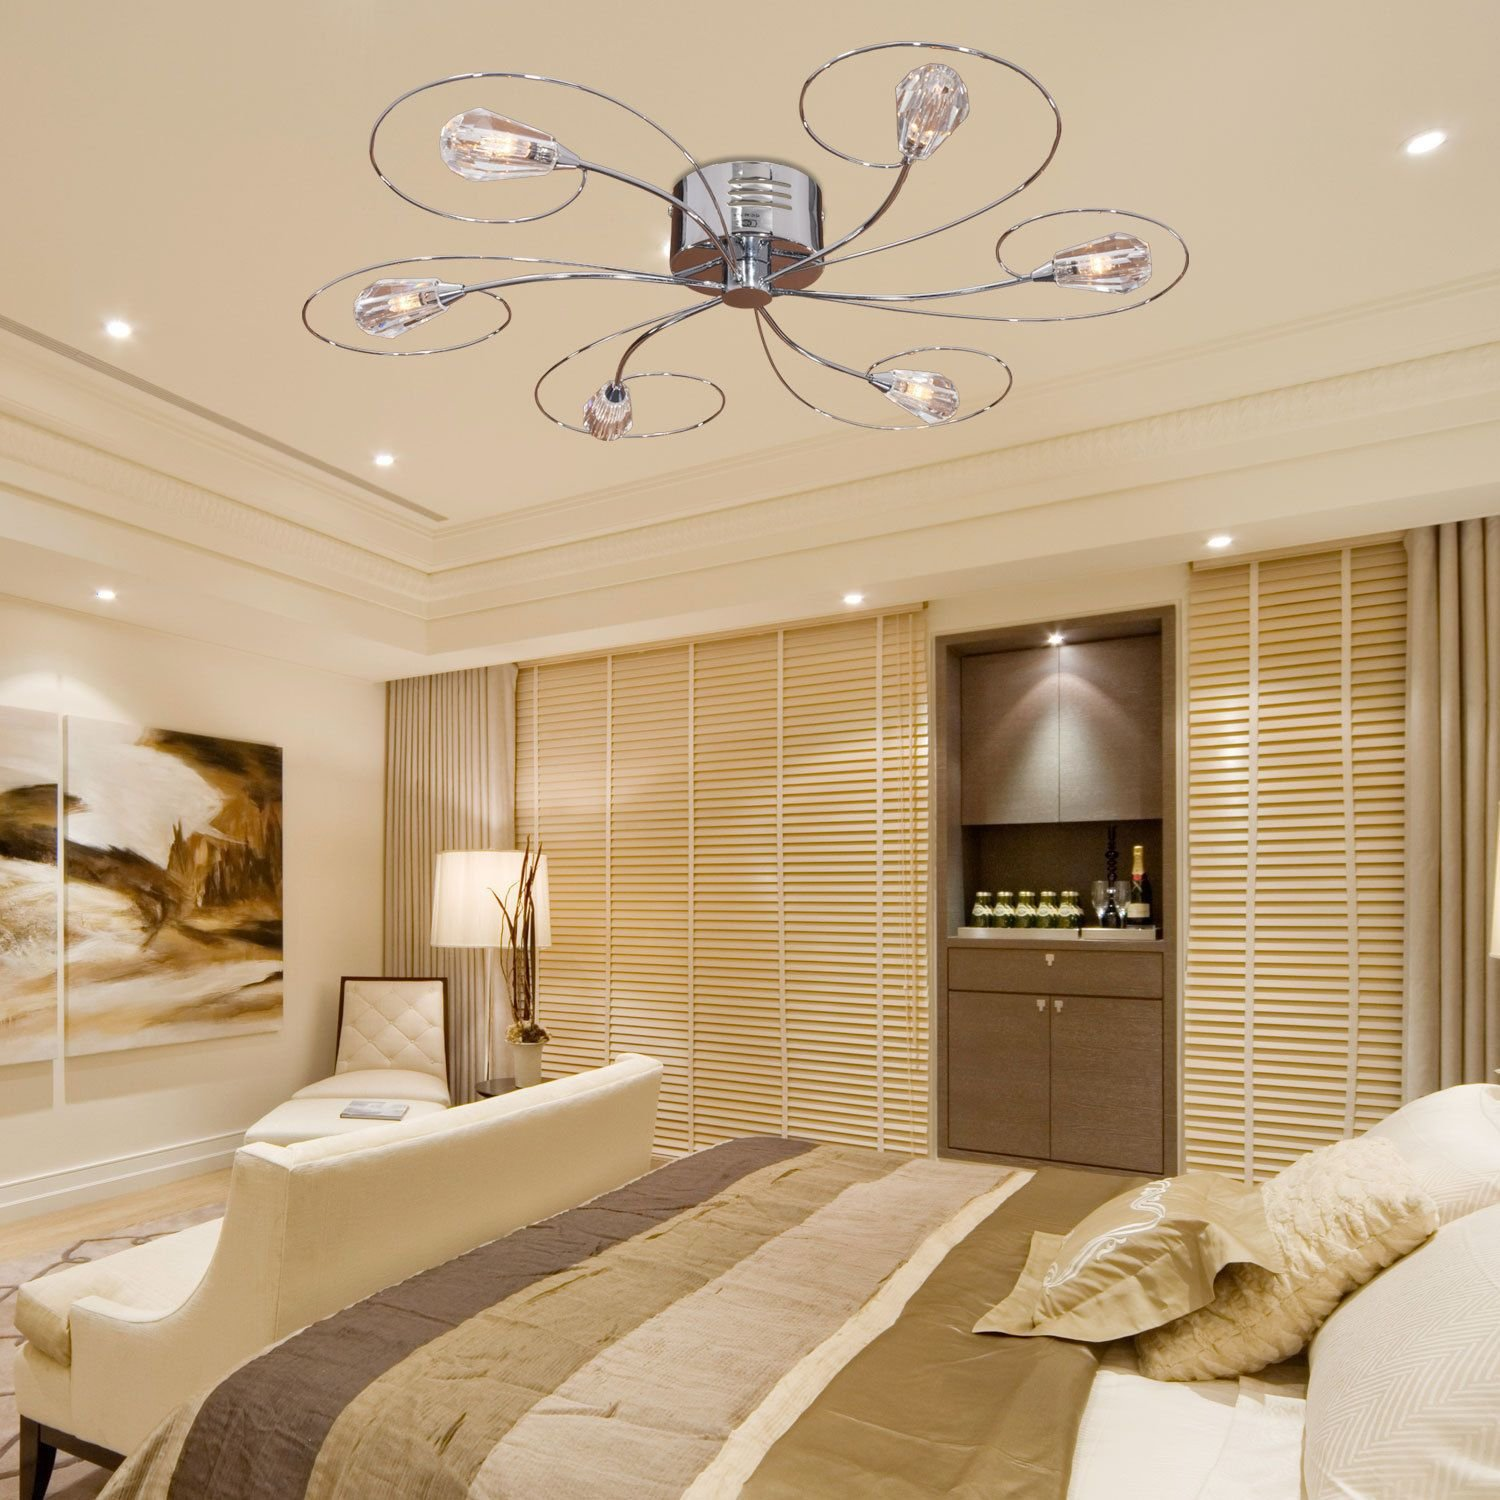 Best How To Select Bedroom Ceiling Fans With Lights – Blogbeen With Pictures